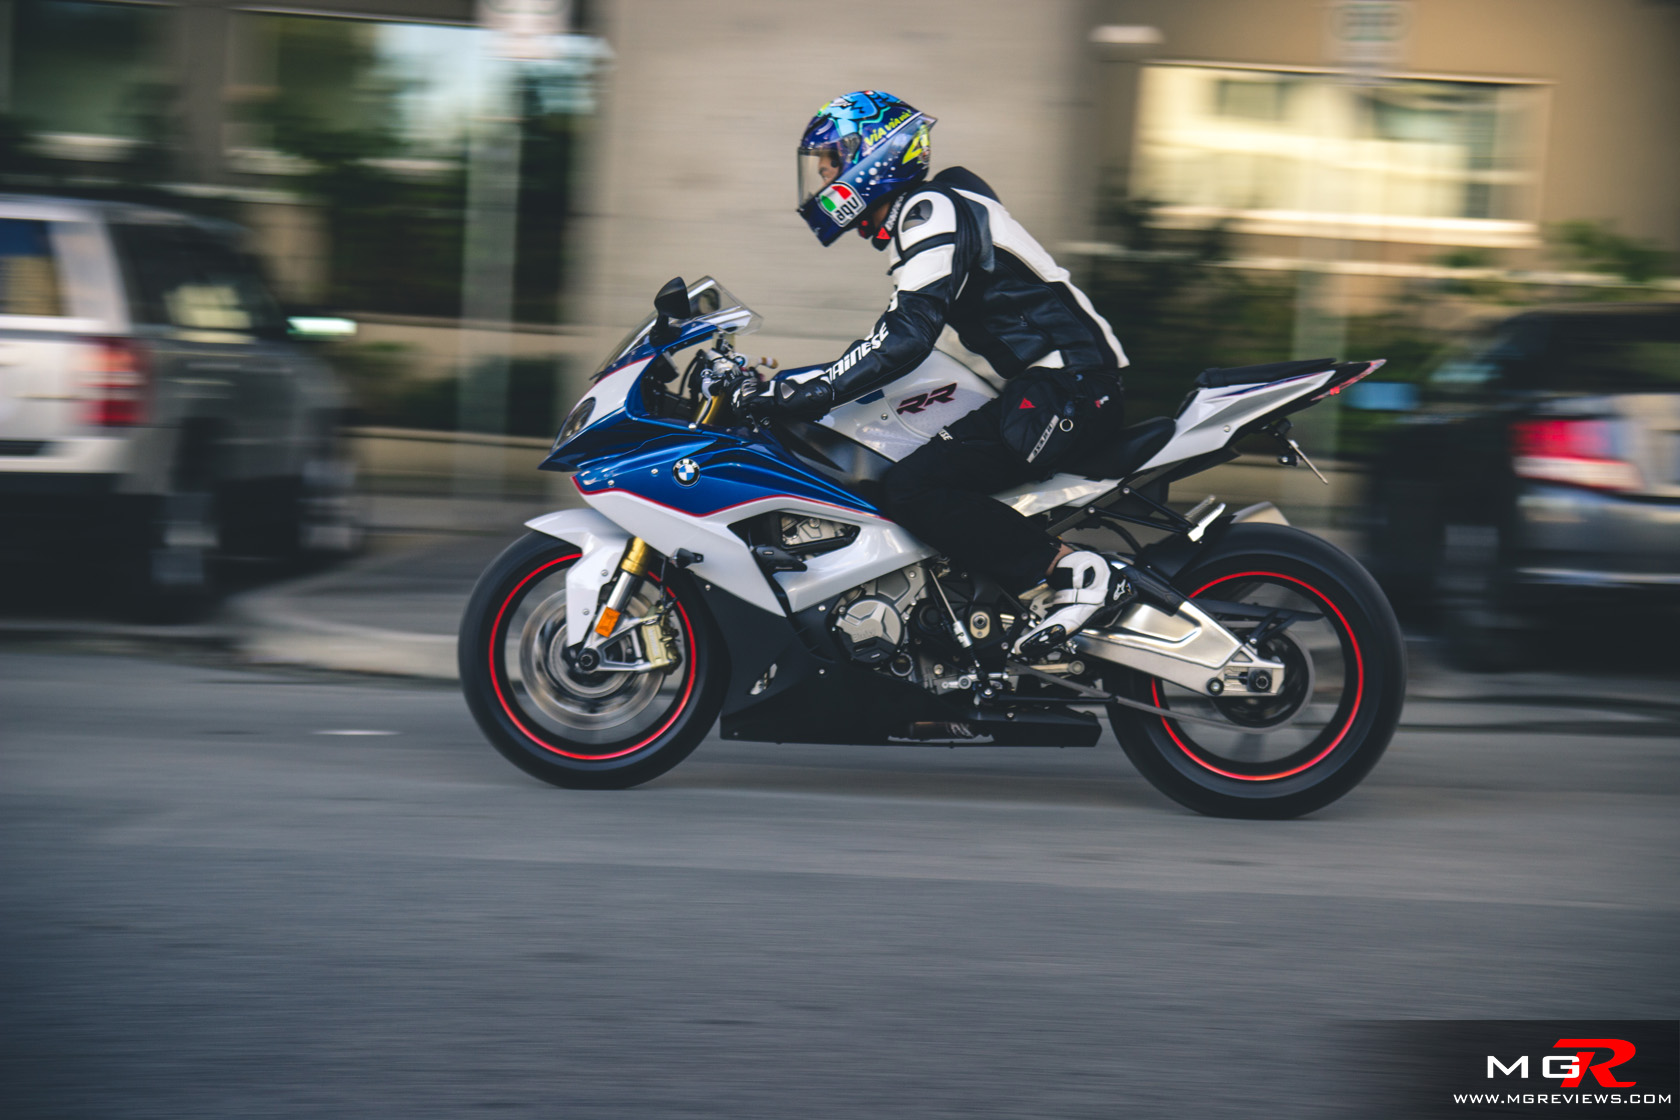 Review: 2016 BMW S1000RR – M.G.Reviews